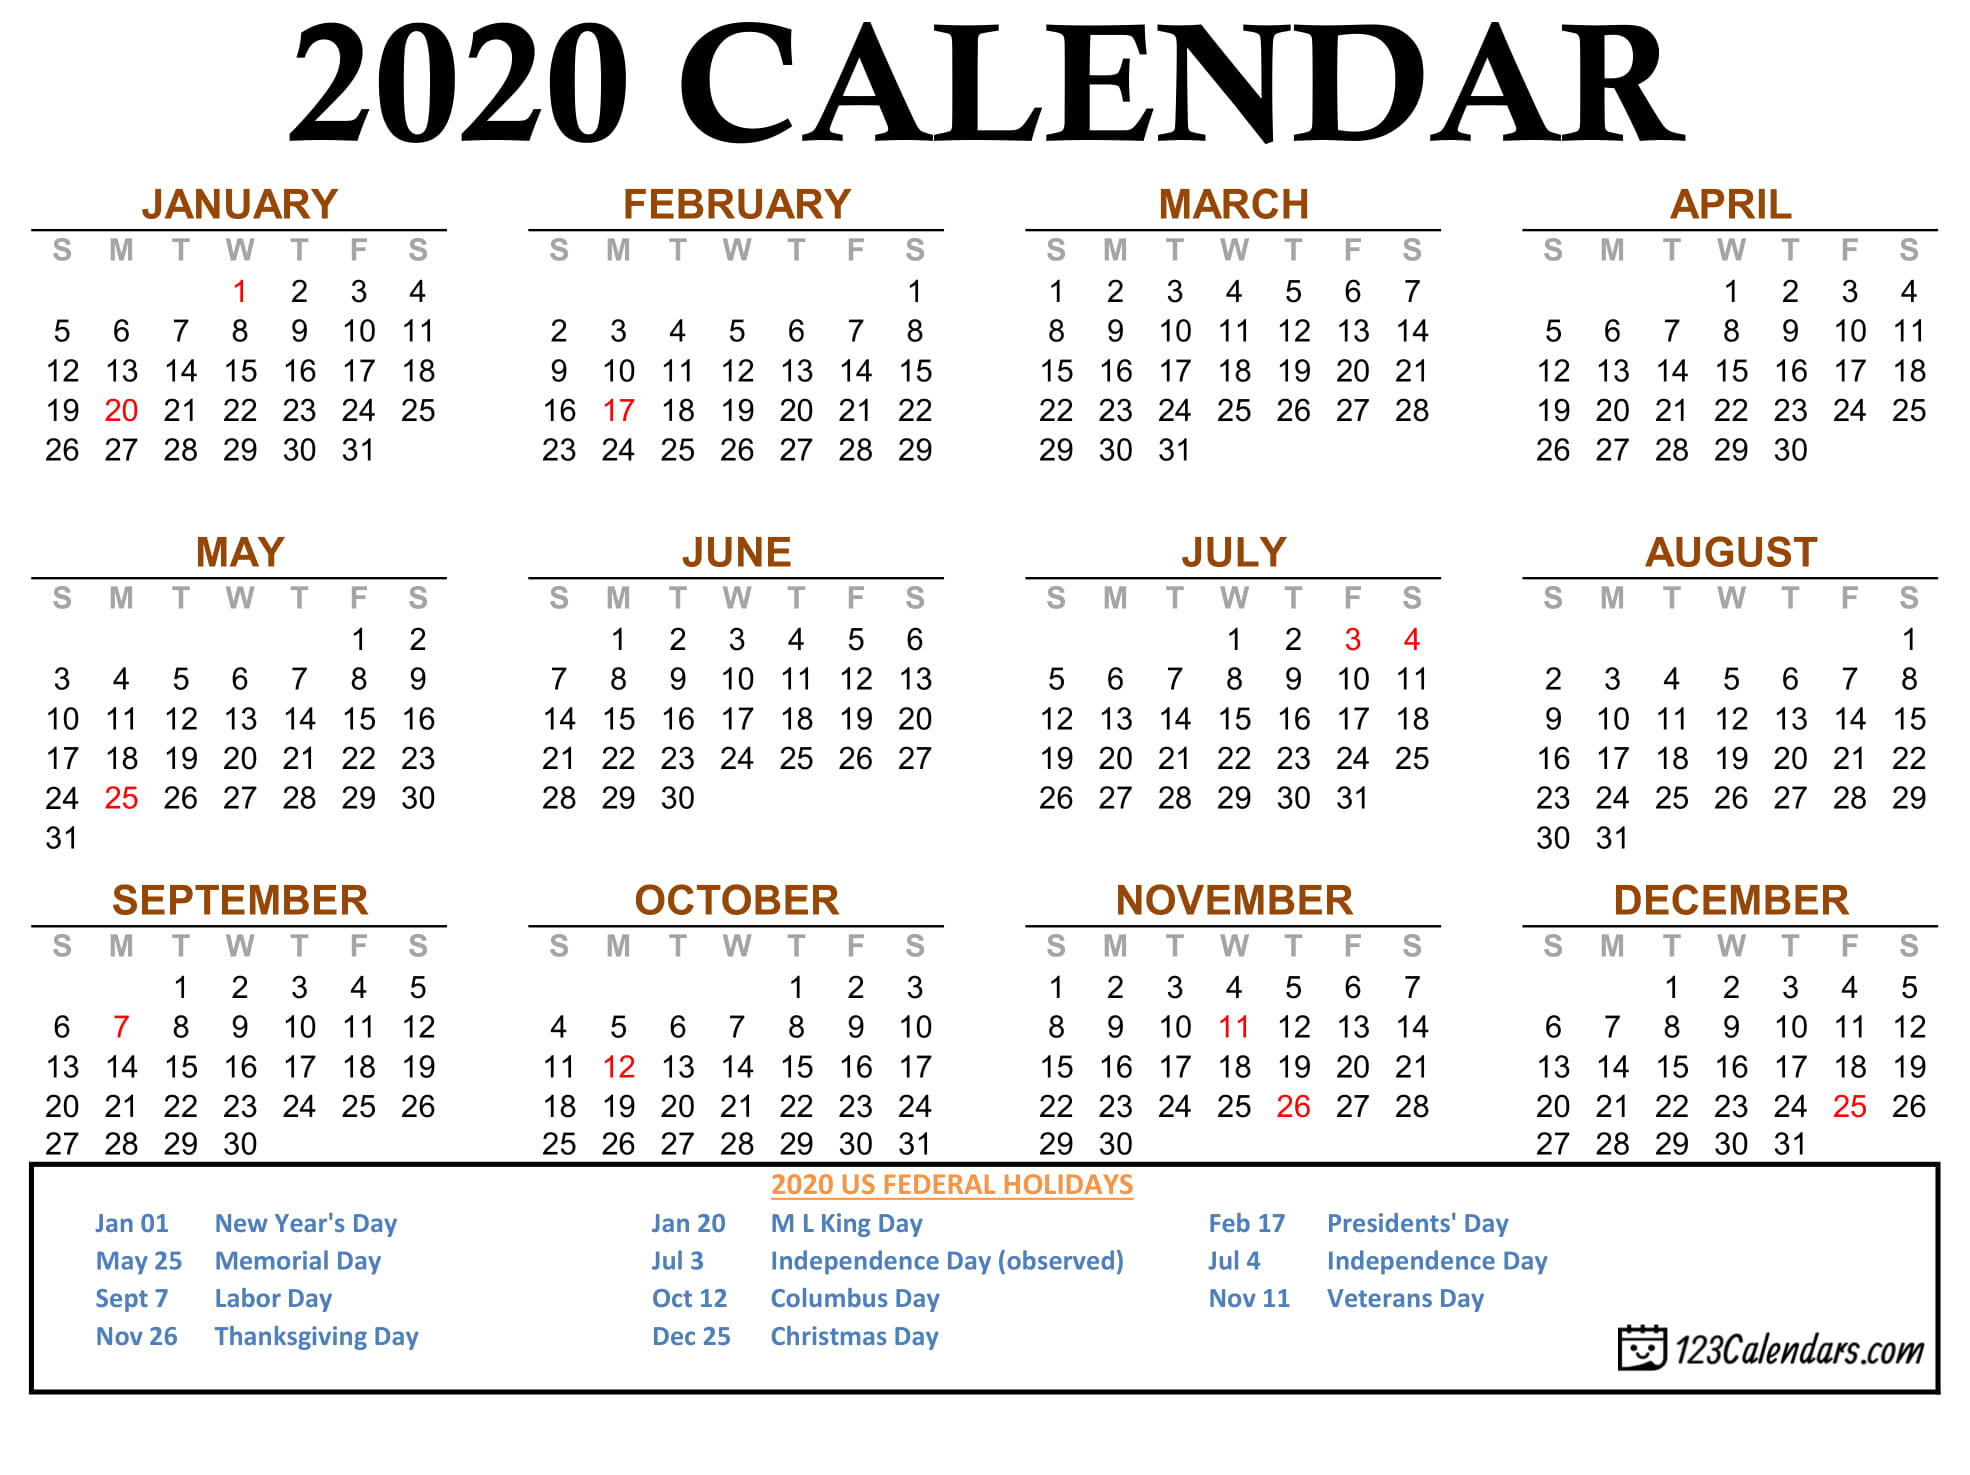 Free Printable 2020 Calendar | 123Calendars pertaining to Legal Size Printable Monthly Calendar 2020